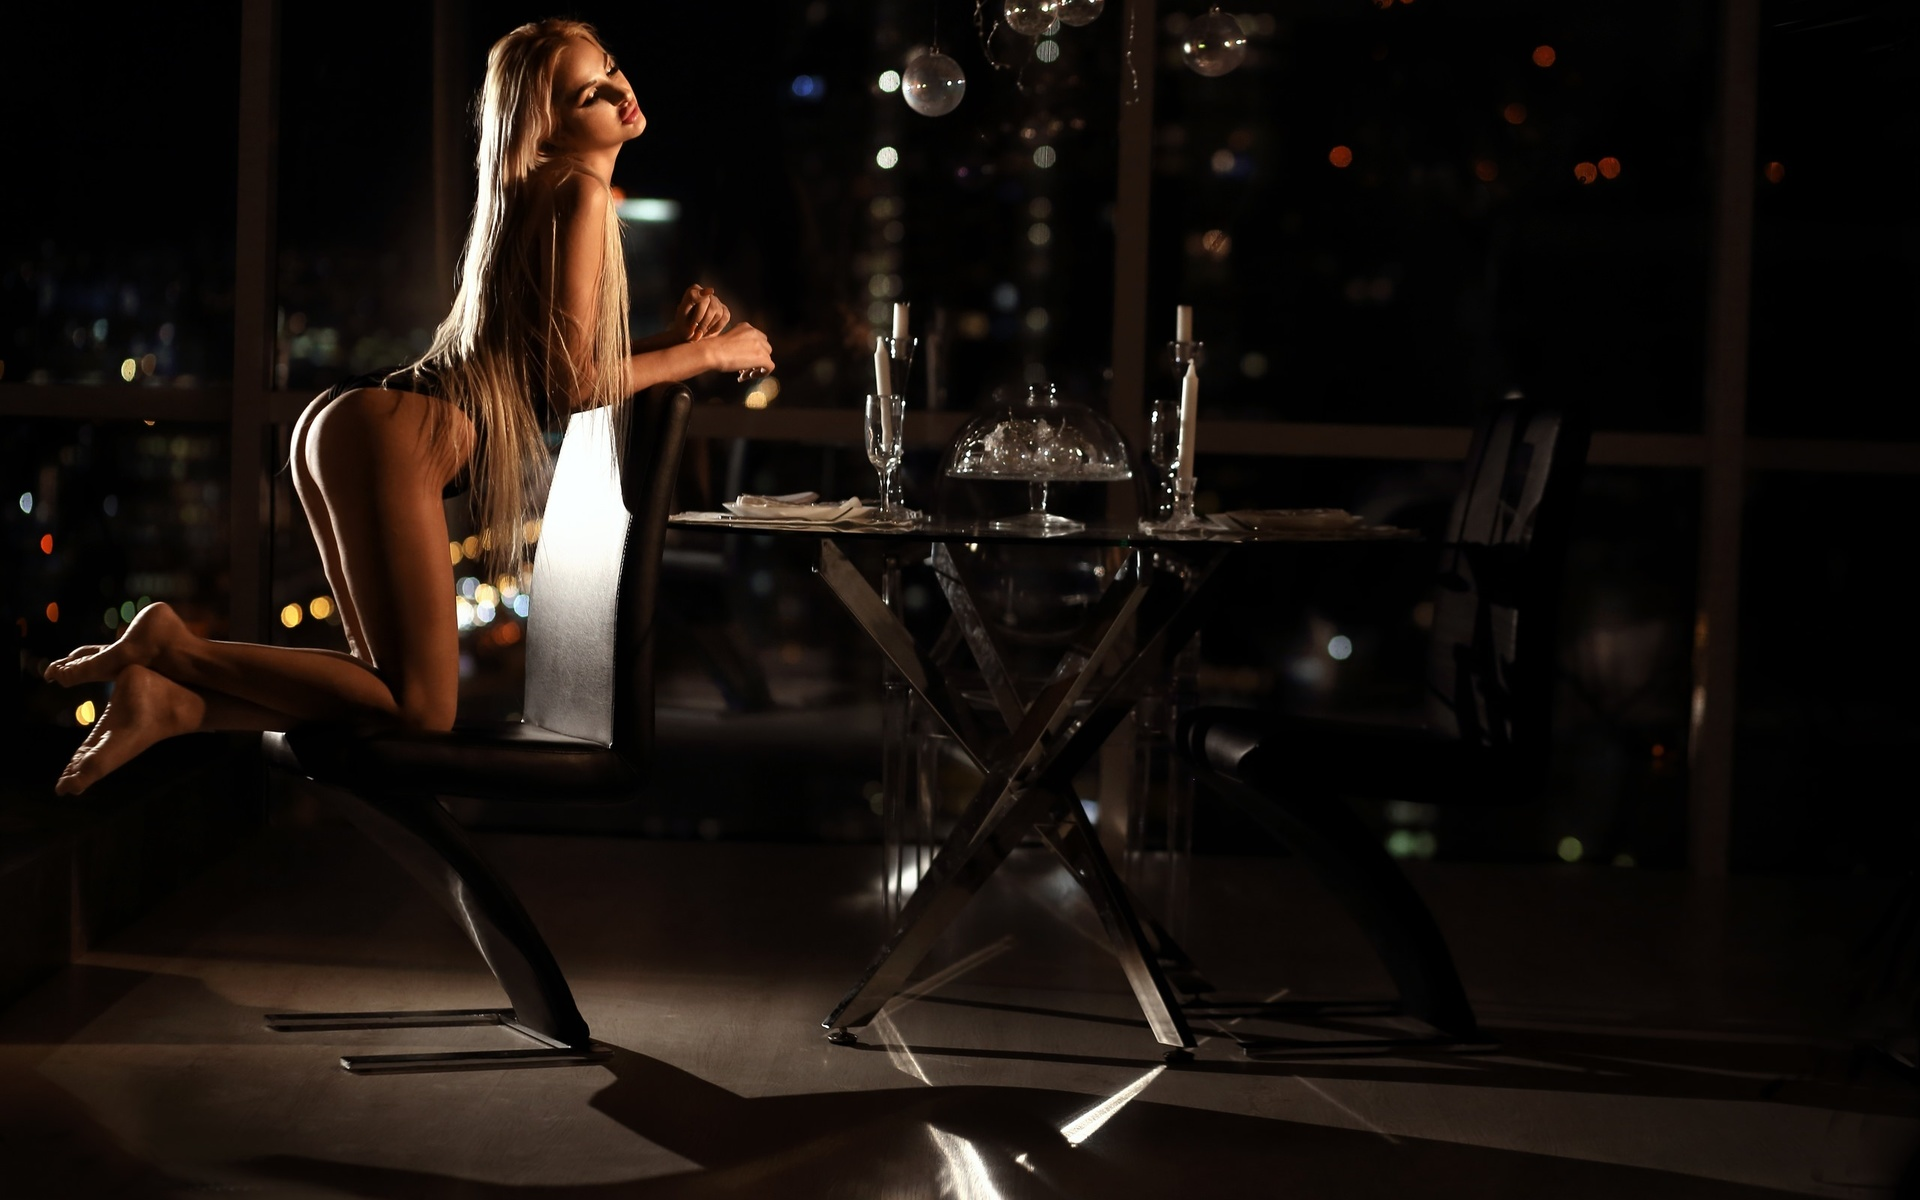 women, kneeling, brunette, blonde, ass, chair, table, long hair, candles, drinking glass, skinny, black lingerie, bokeh, ника мельн ,александр мельн